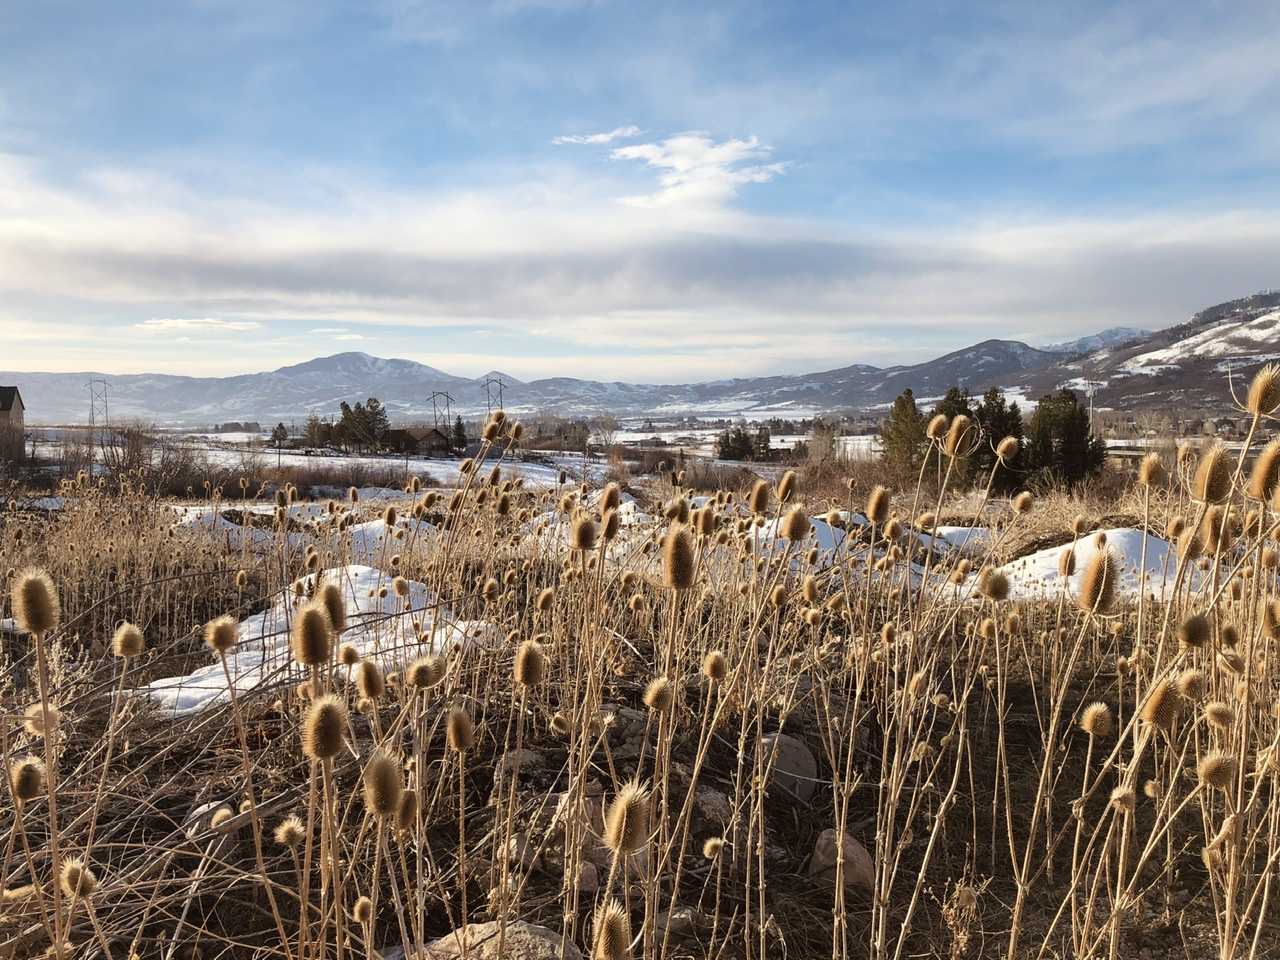 A. landscape with snow and morning light in a hazy blue sky, and dry cattails in the foreground